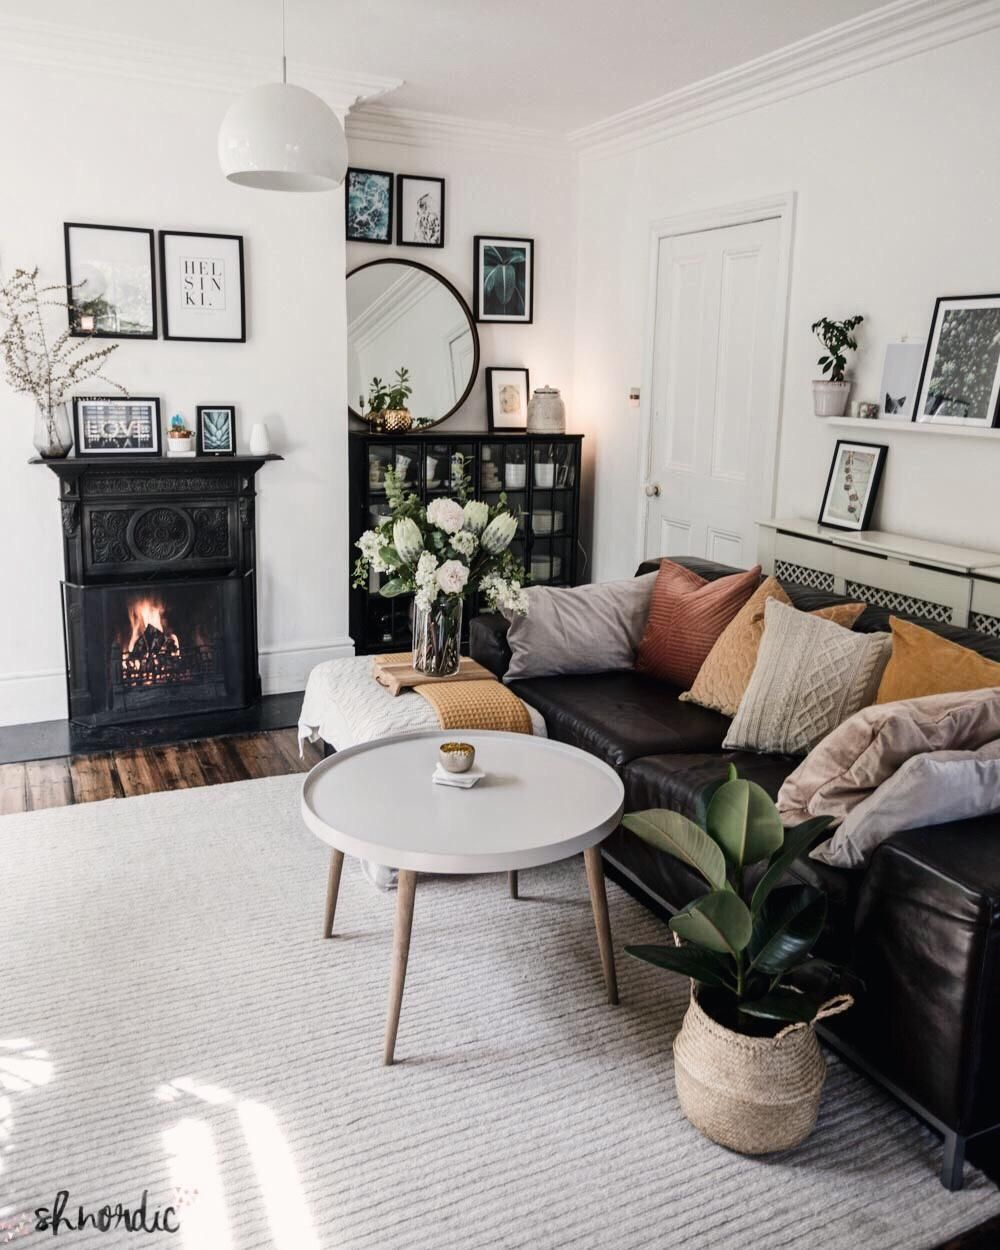 In My Living Room How To Decorate Long And Narrow Rooms By Shnordic Leather Couches Living Room Cosy Living Room Black Leather Couch Living Room